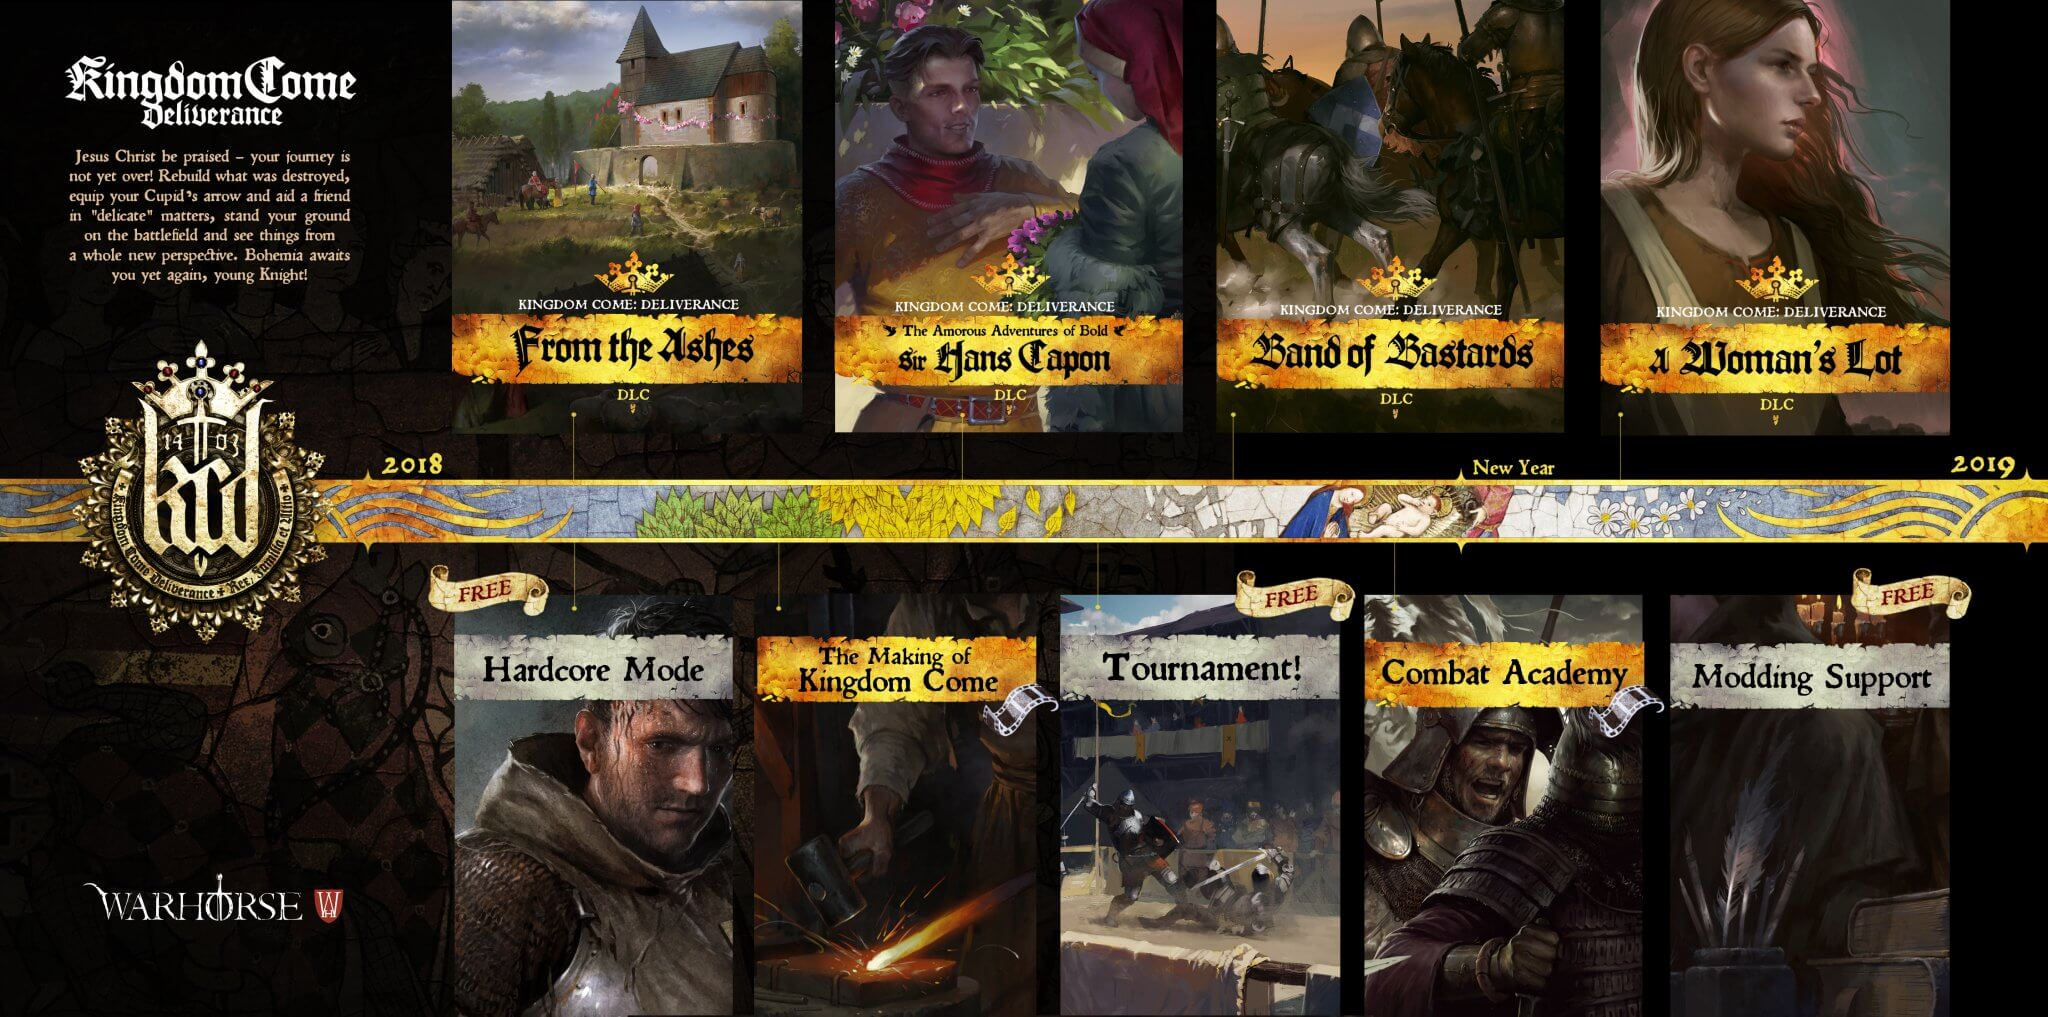 Warhorse Studios announced free DLCs for Kingdom Come